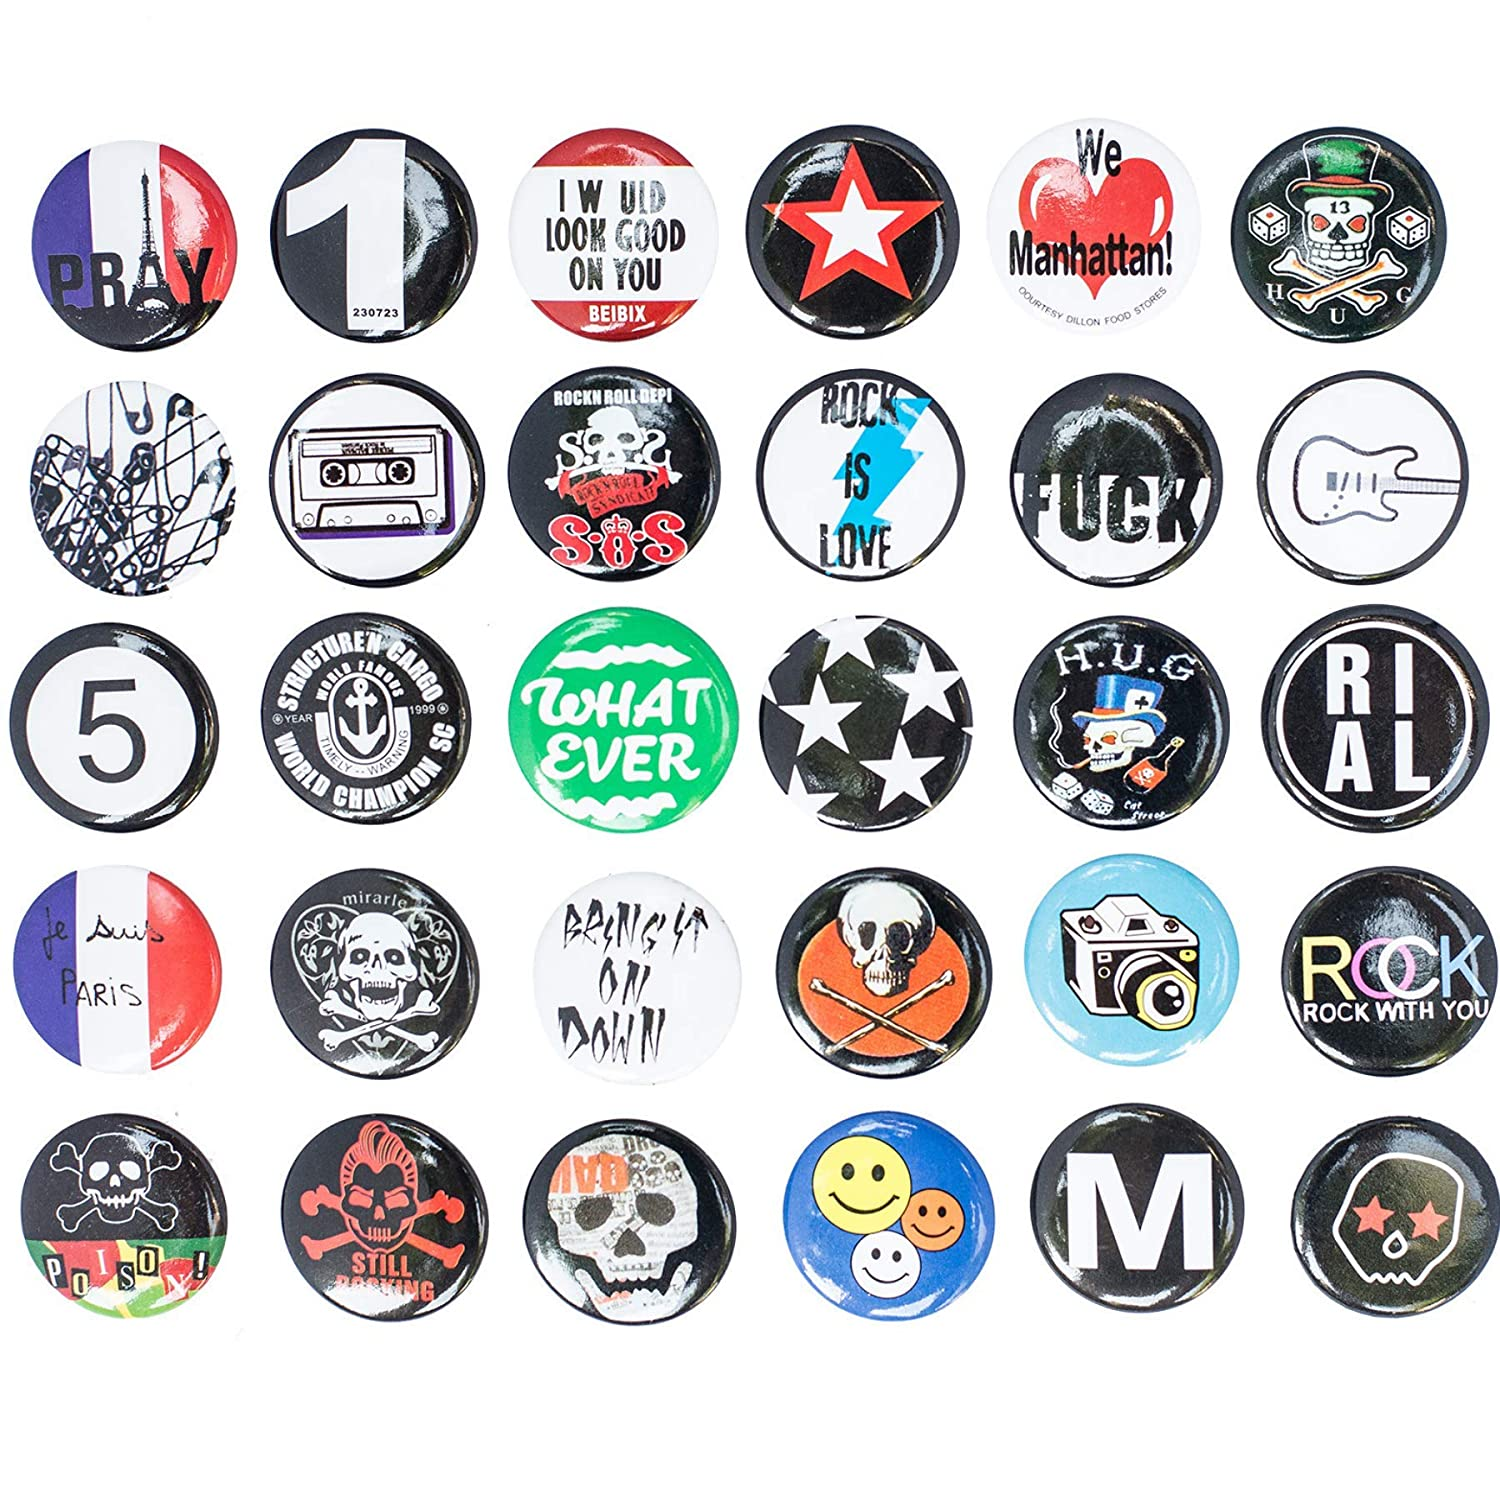 Special100% Huge Wholesale Set of 30Pc Cool Buttons Pins Badges 80's Punk Rock Hardcore Skull Buttons pins Slogans Sayings pin,Lapel pin for Clothes/Bags/Backpack/Hats/Jeans and More... 4336833884